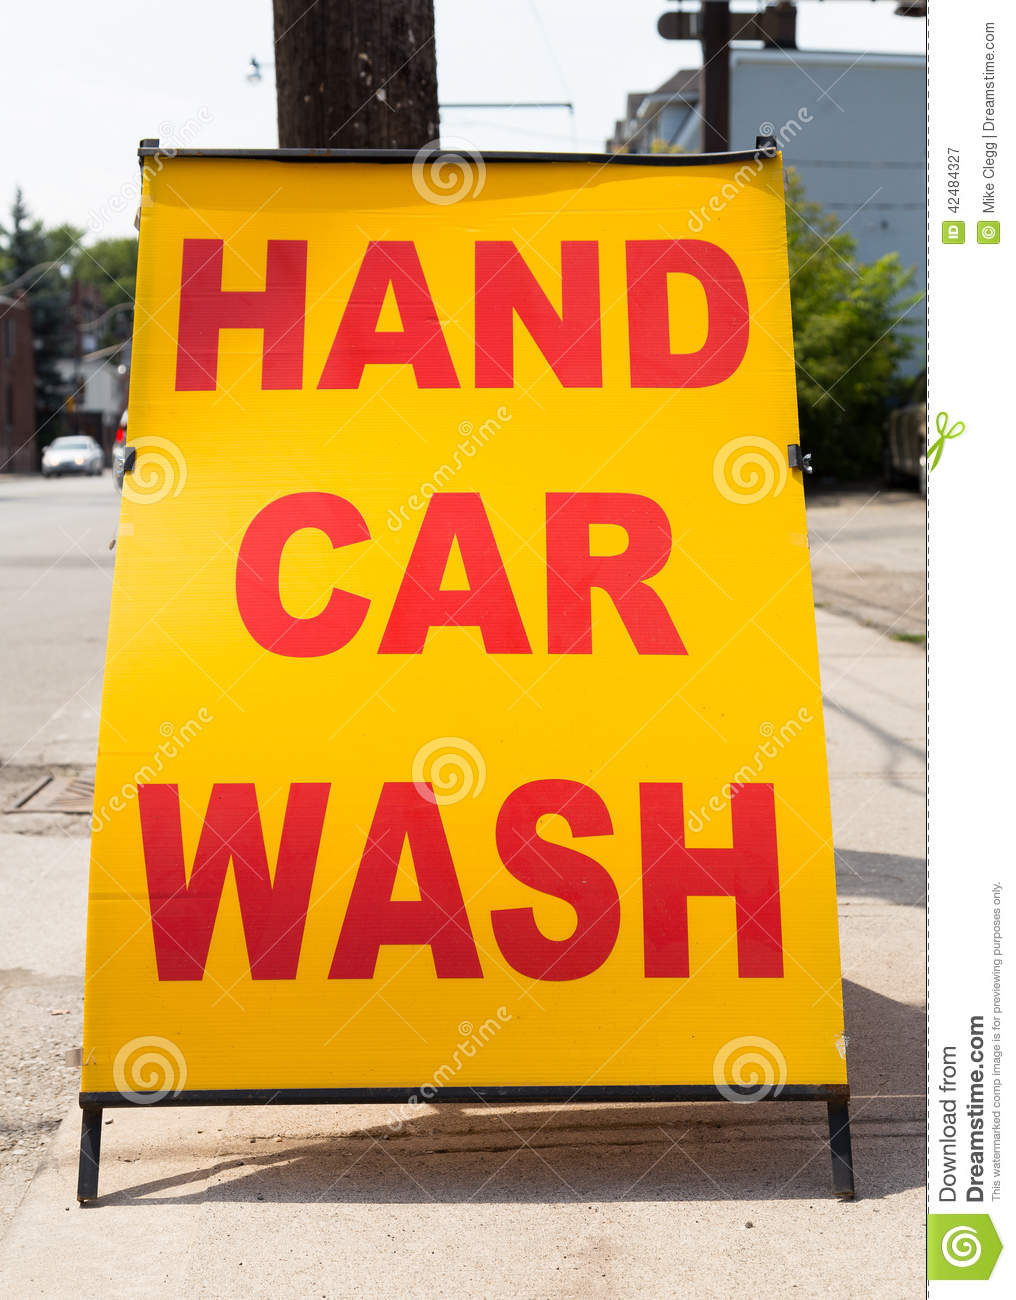 Hand Car Wash Stock Image Image Of Message Image Business 42484327